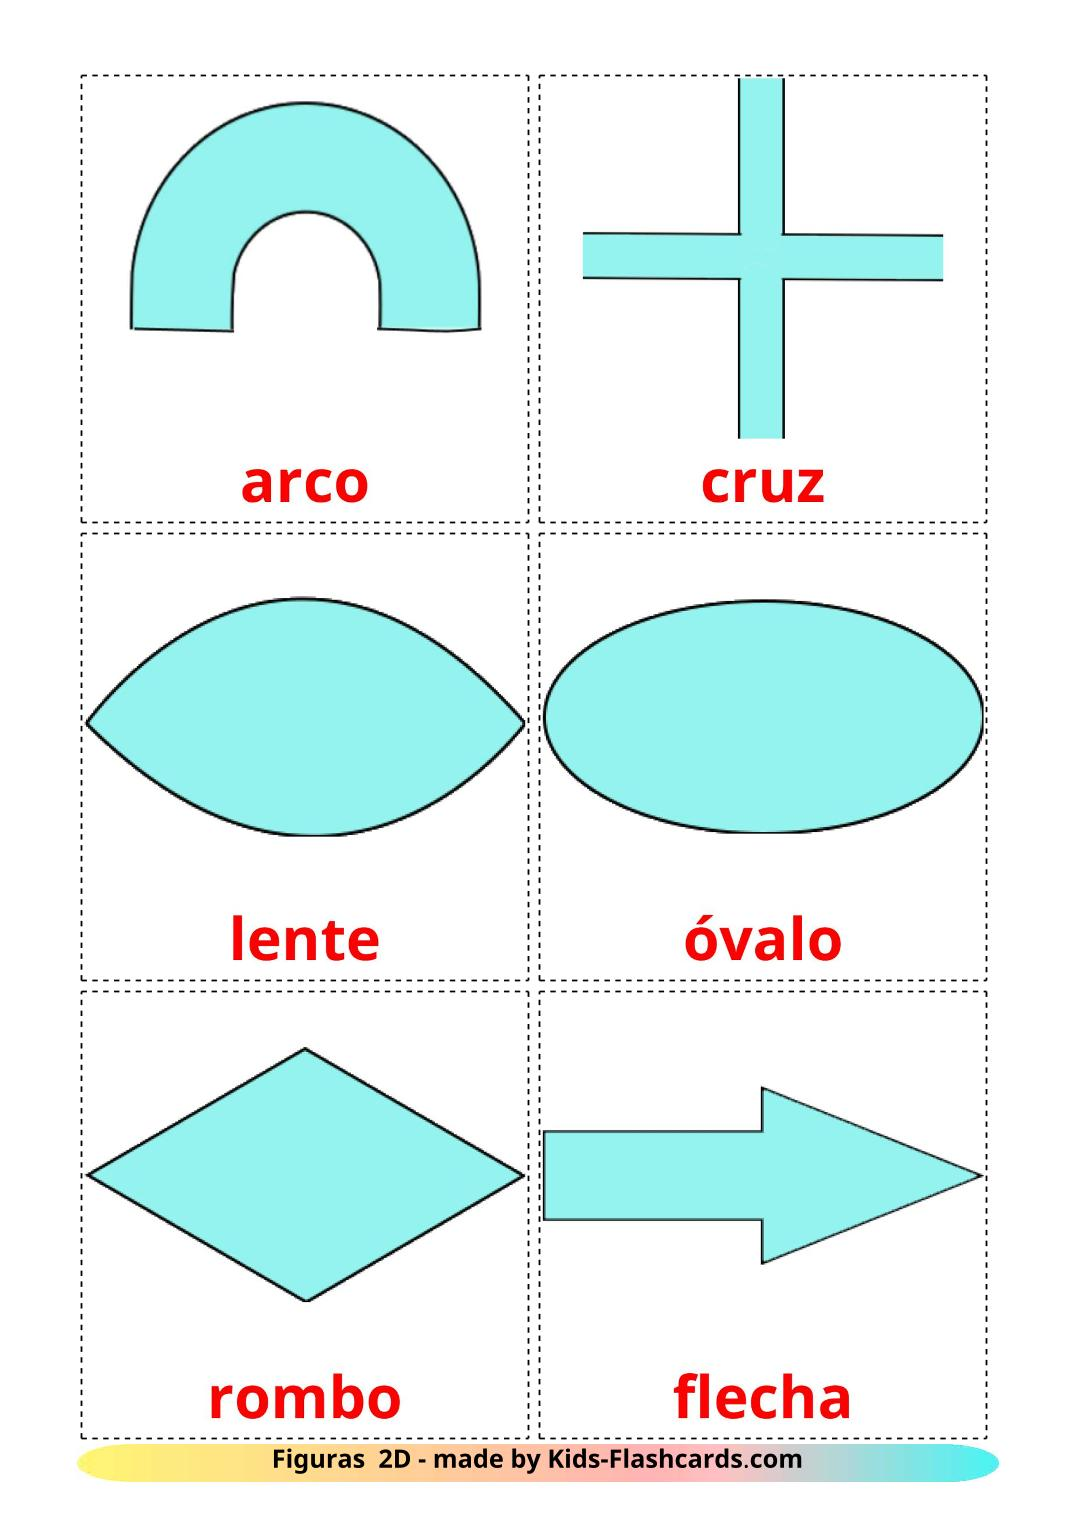 2D Shapes - 35 Free Printable spanish Flashcards